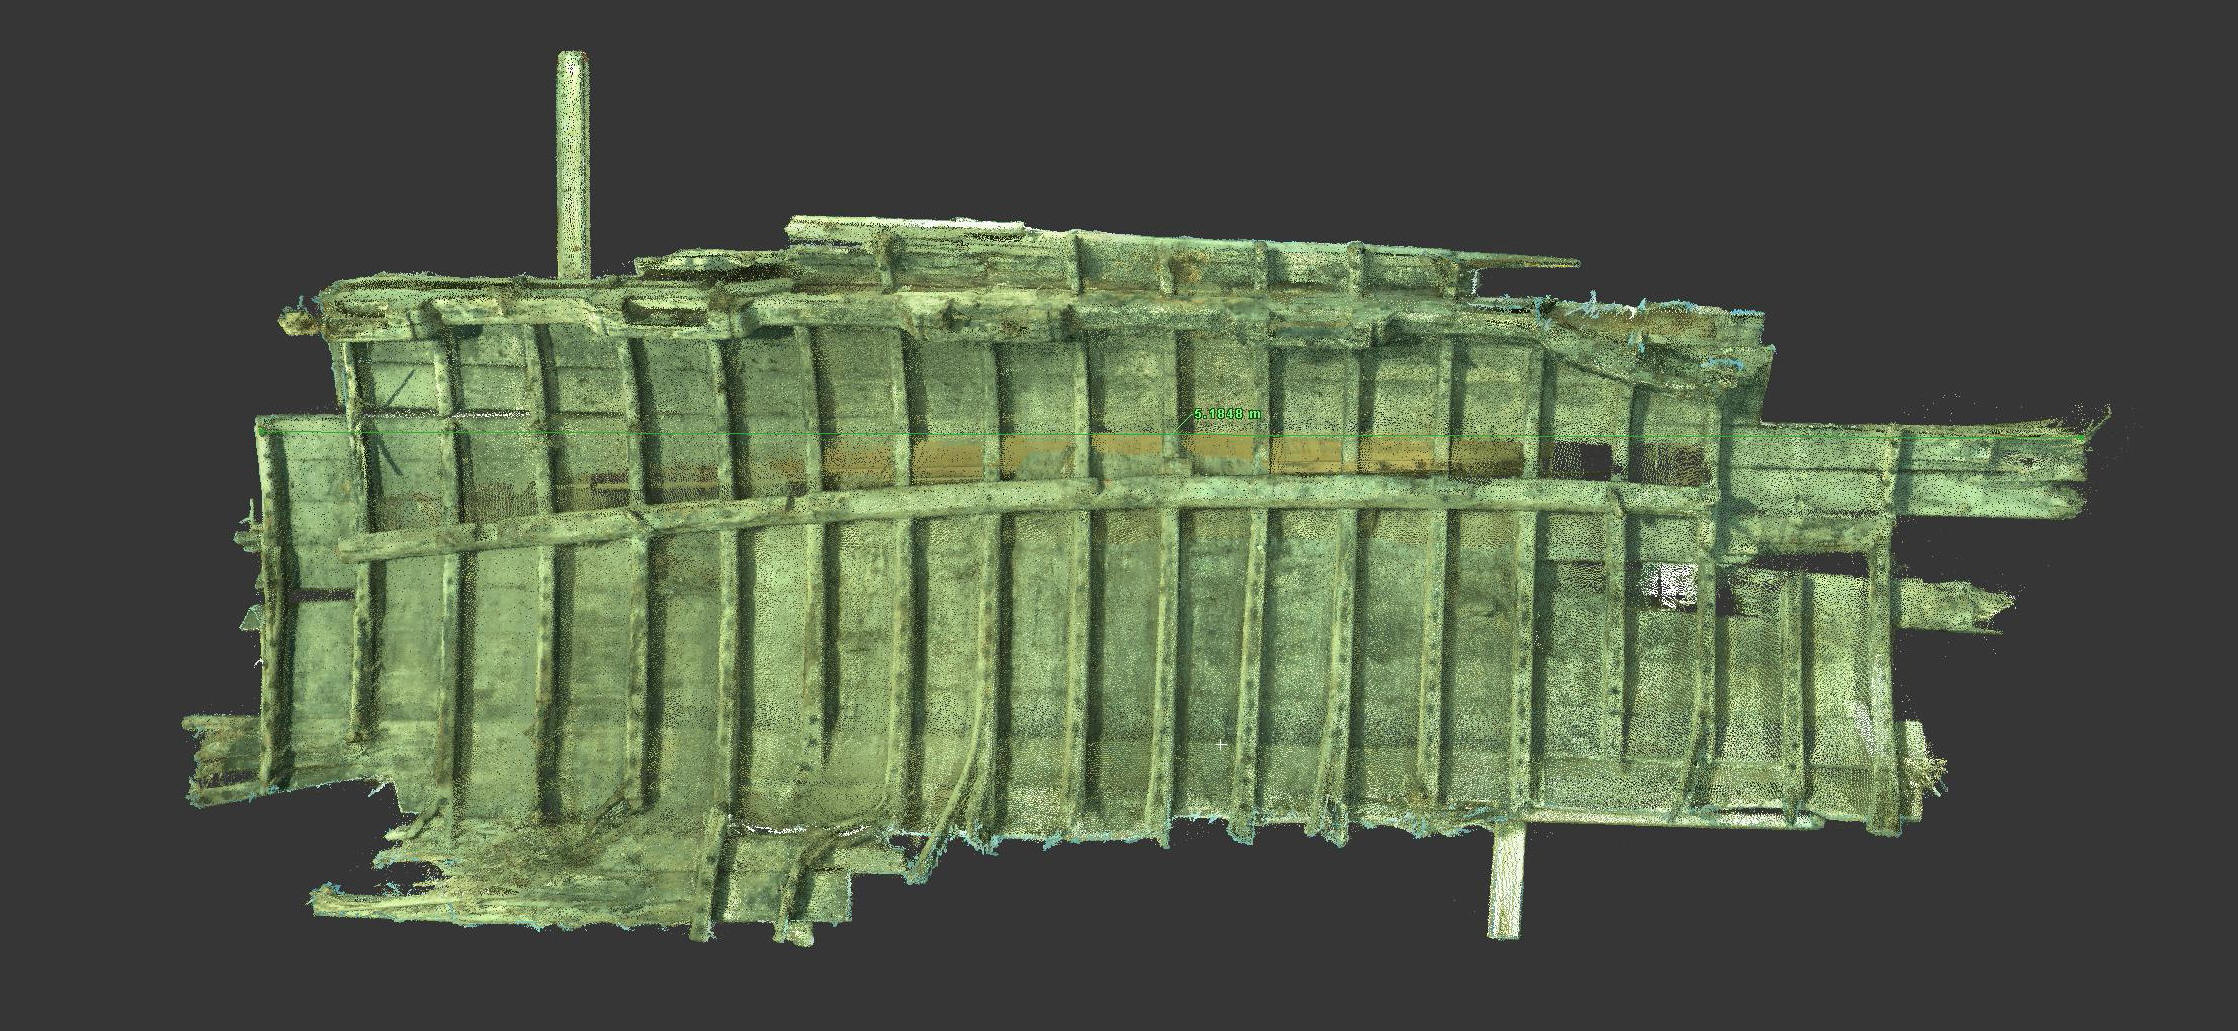 Laser scanning of the ancient shipwrecks in Tallinn